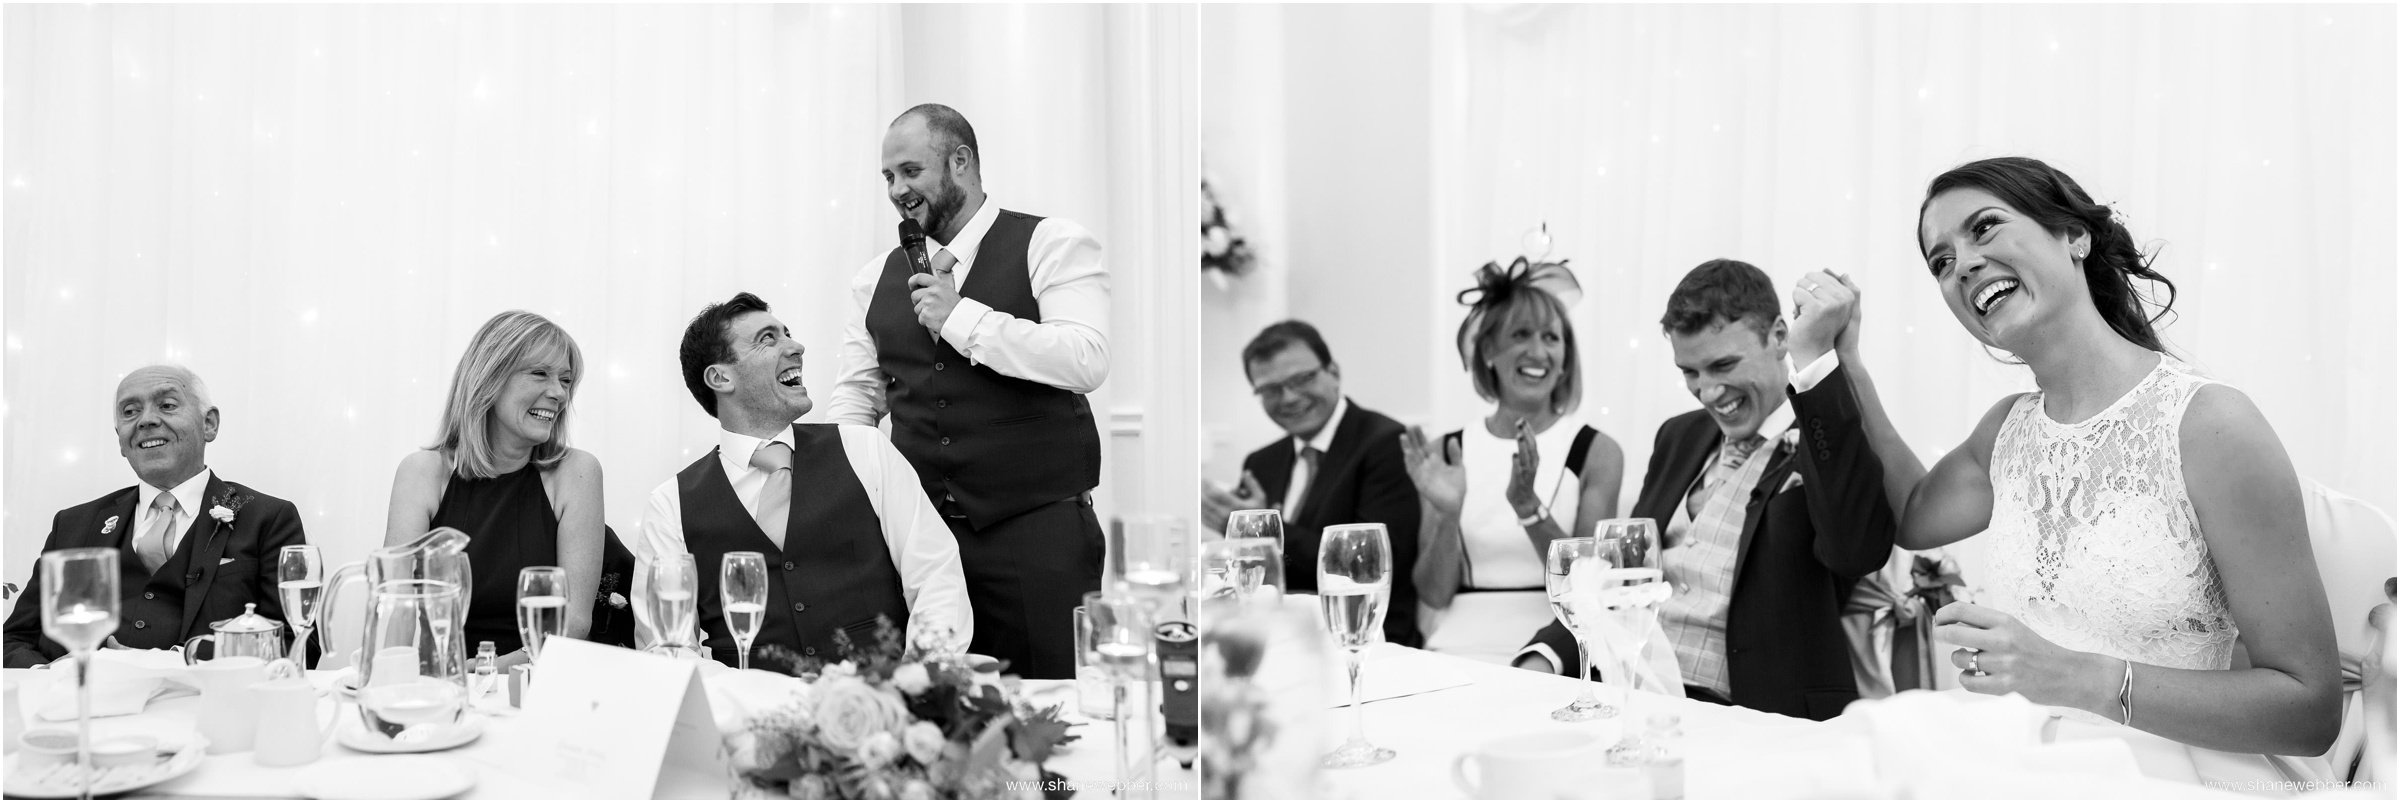 wedding photography speeches